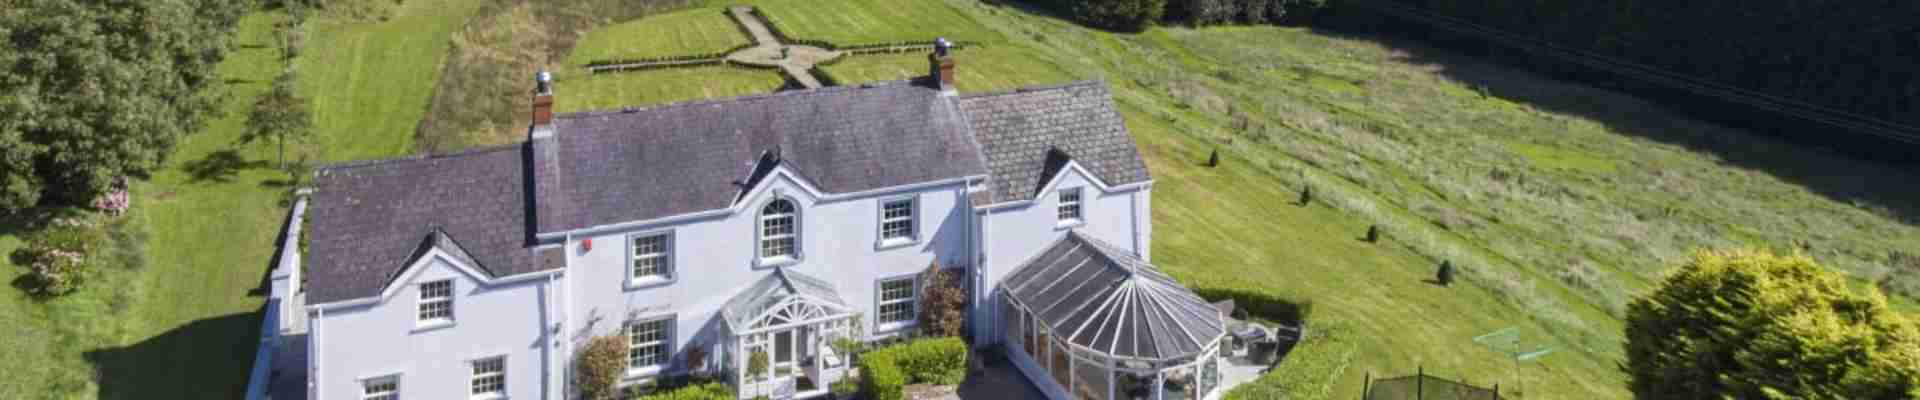 Child & Family Friendly Cottages in Wales